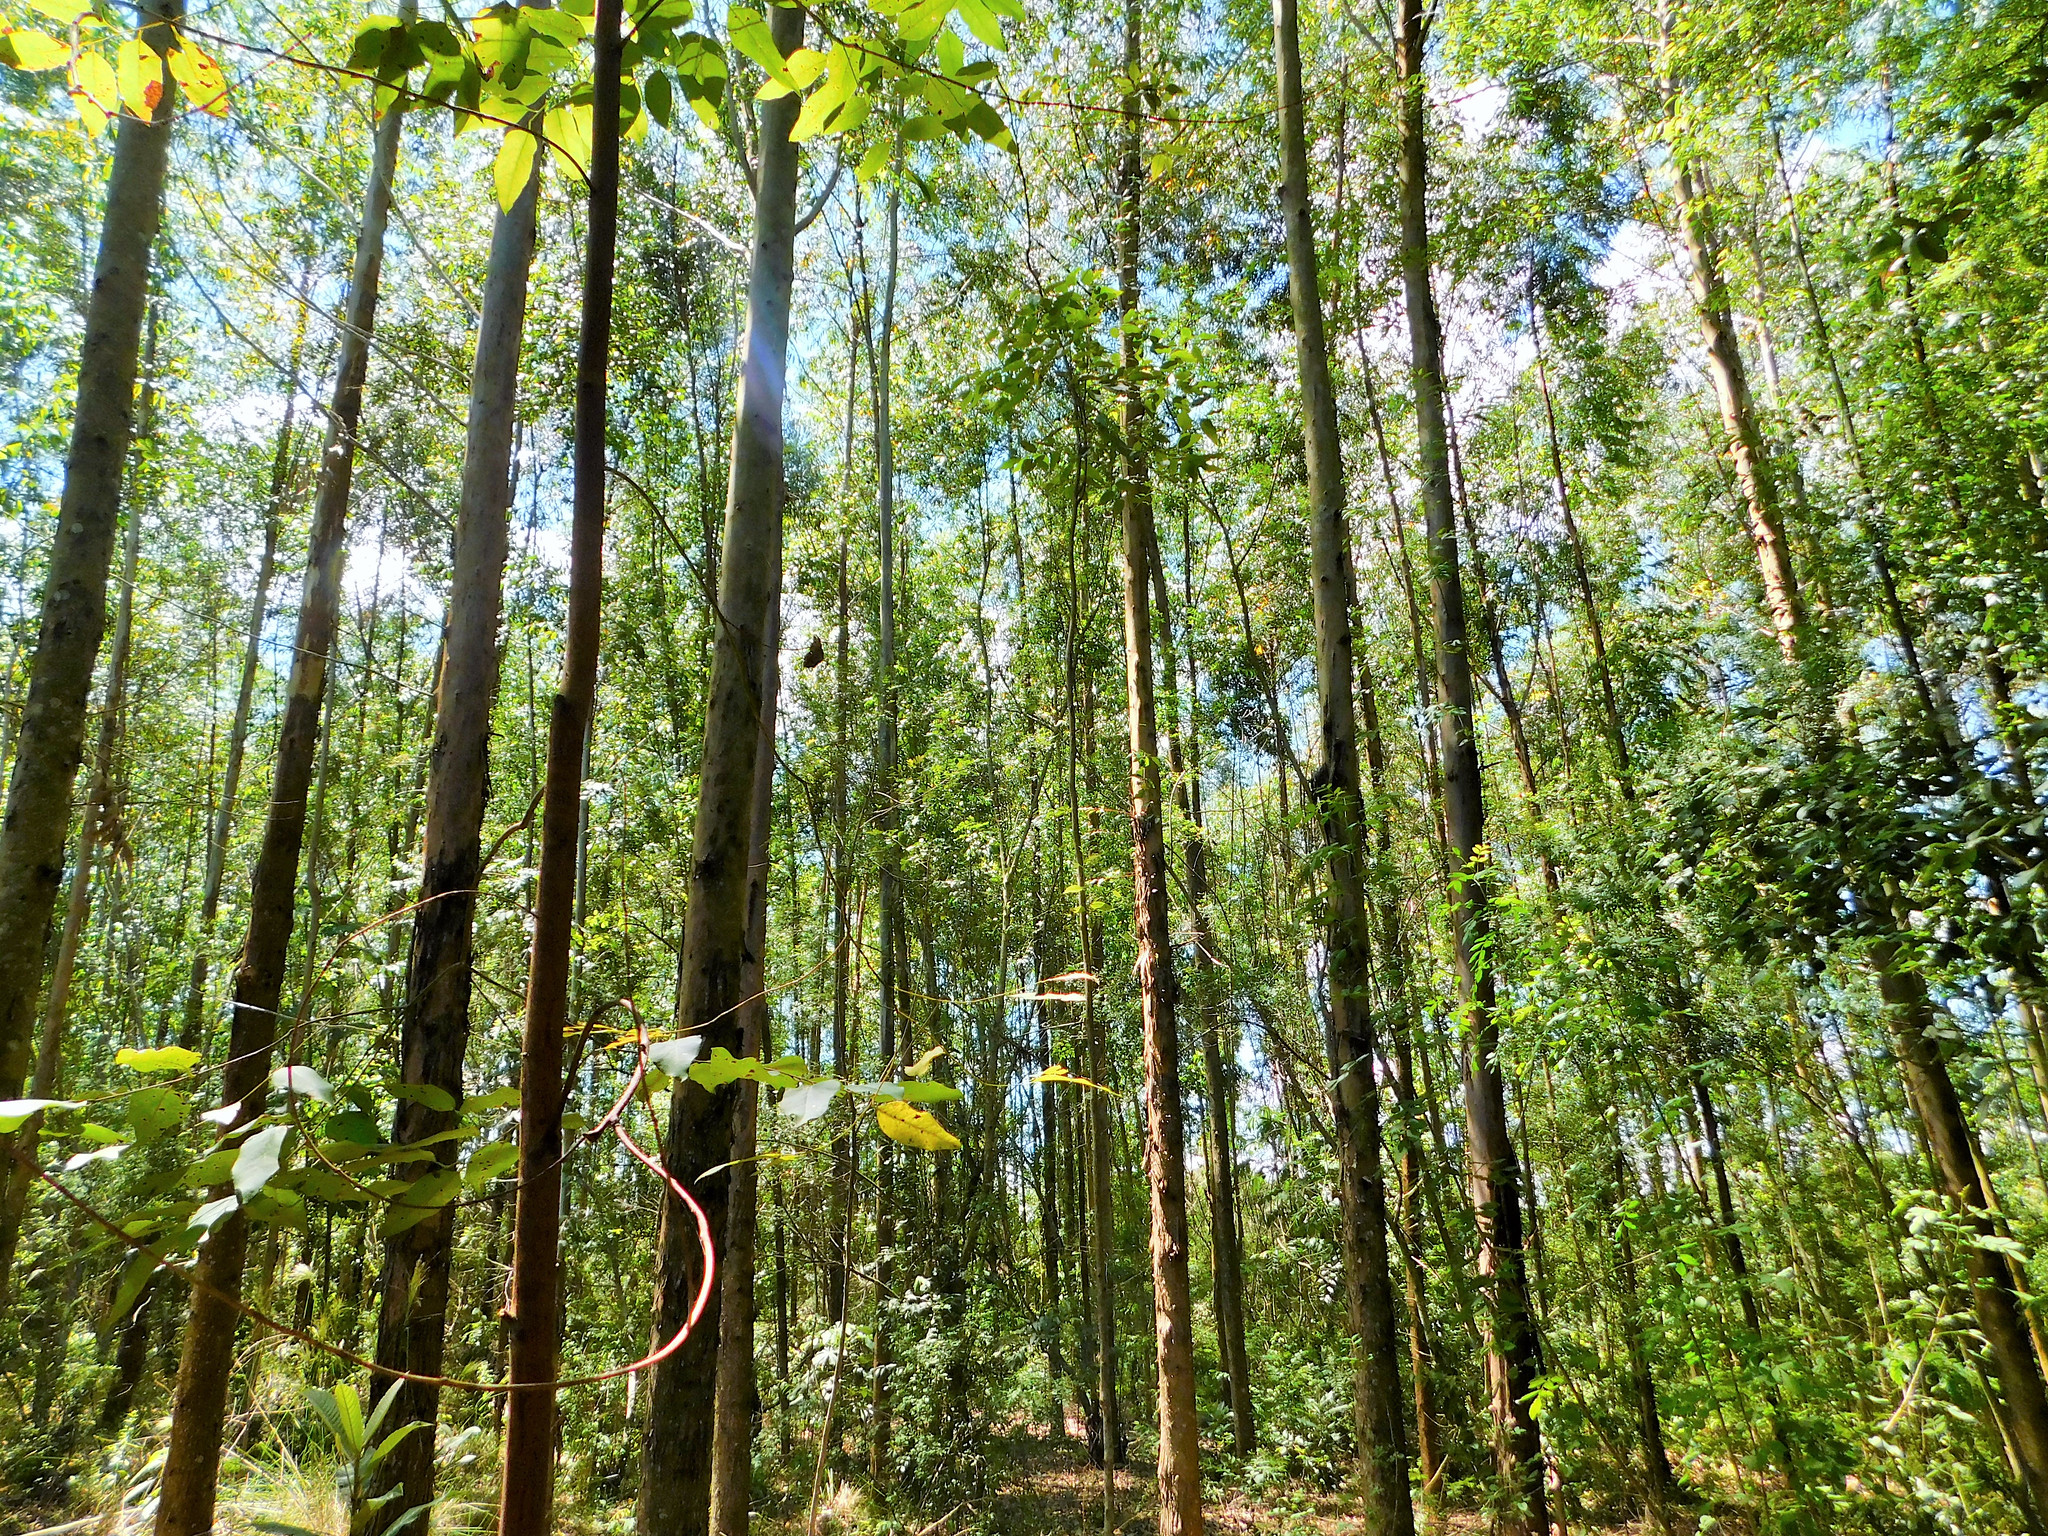 <p>CO2-EOR with direct air capture is just one tool. Other methods of capturing carbon, like planting trees, also need investment. Photo by Yoly Guterrez/CIFOR.</p>